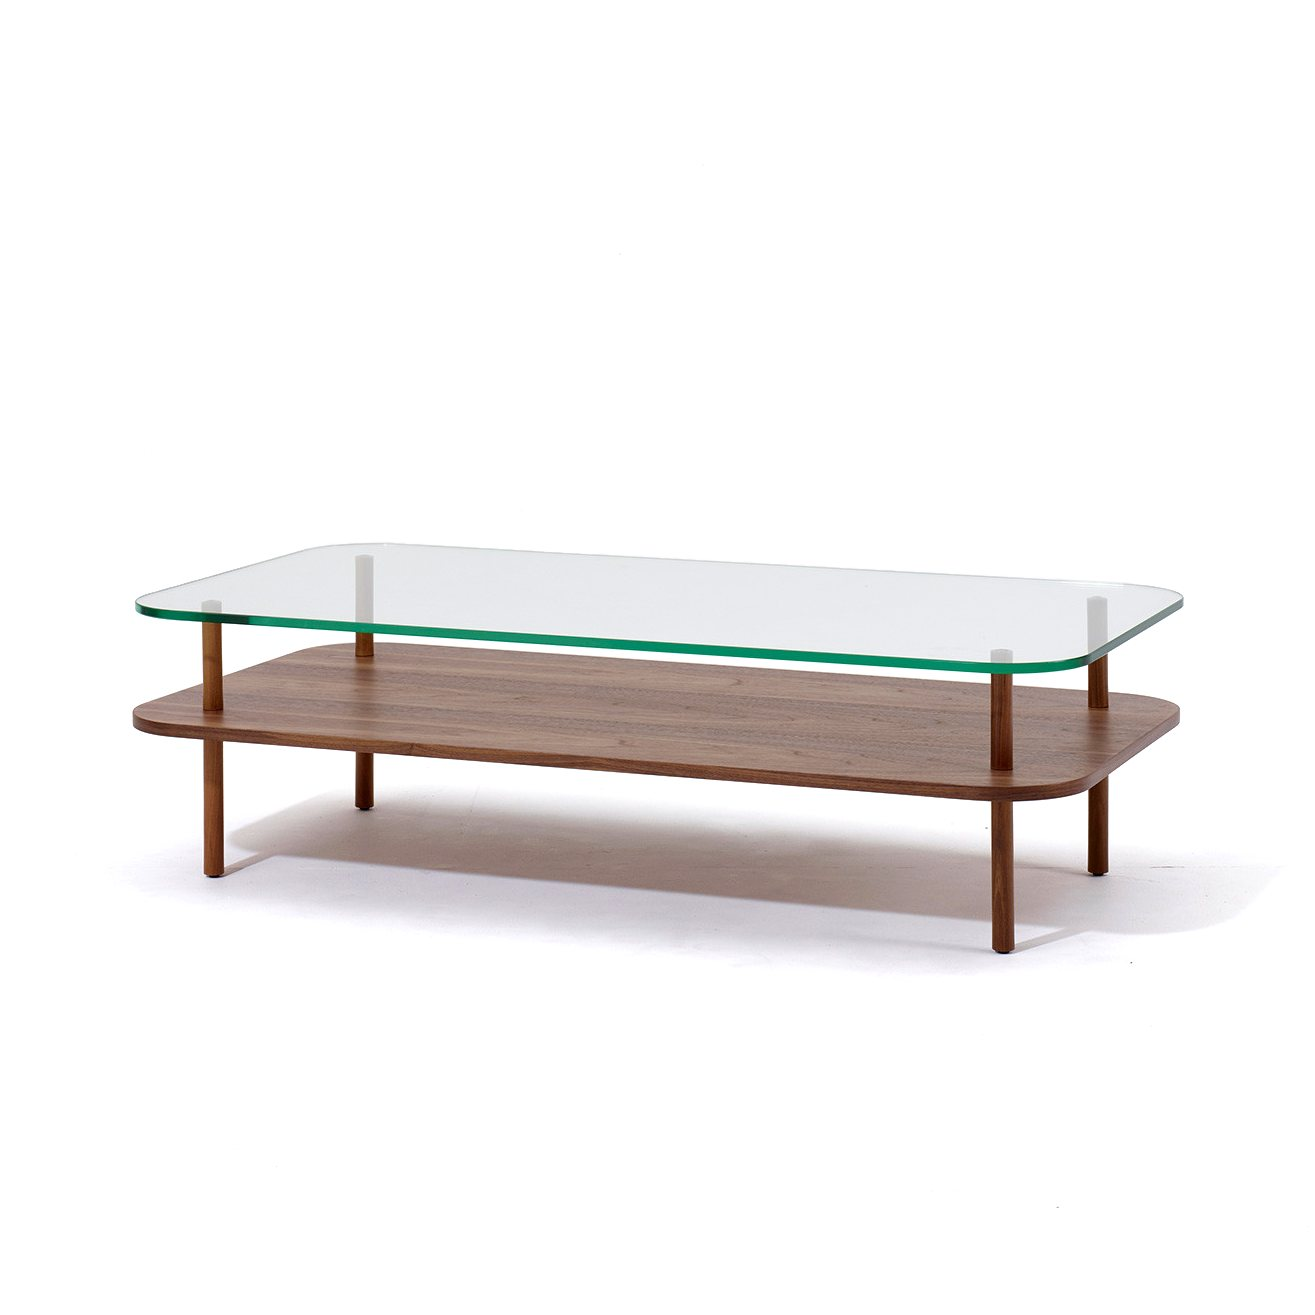 Unison Rectangular Coffee Table By Terence Woodgate For Scp Up Interiors